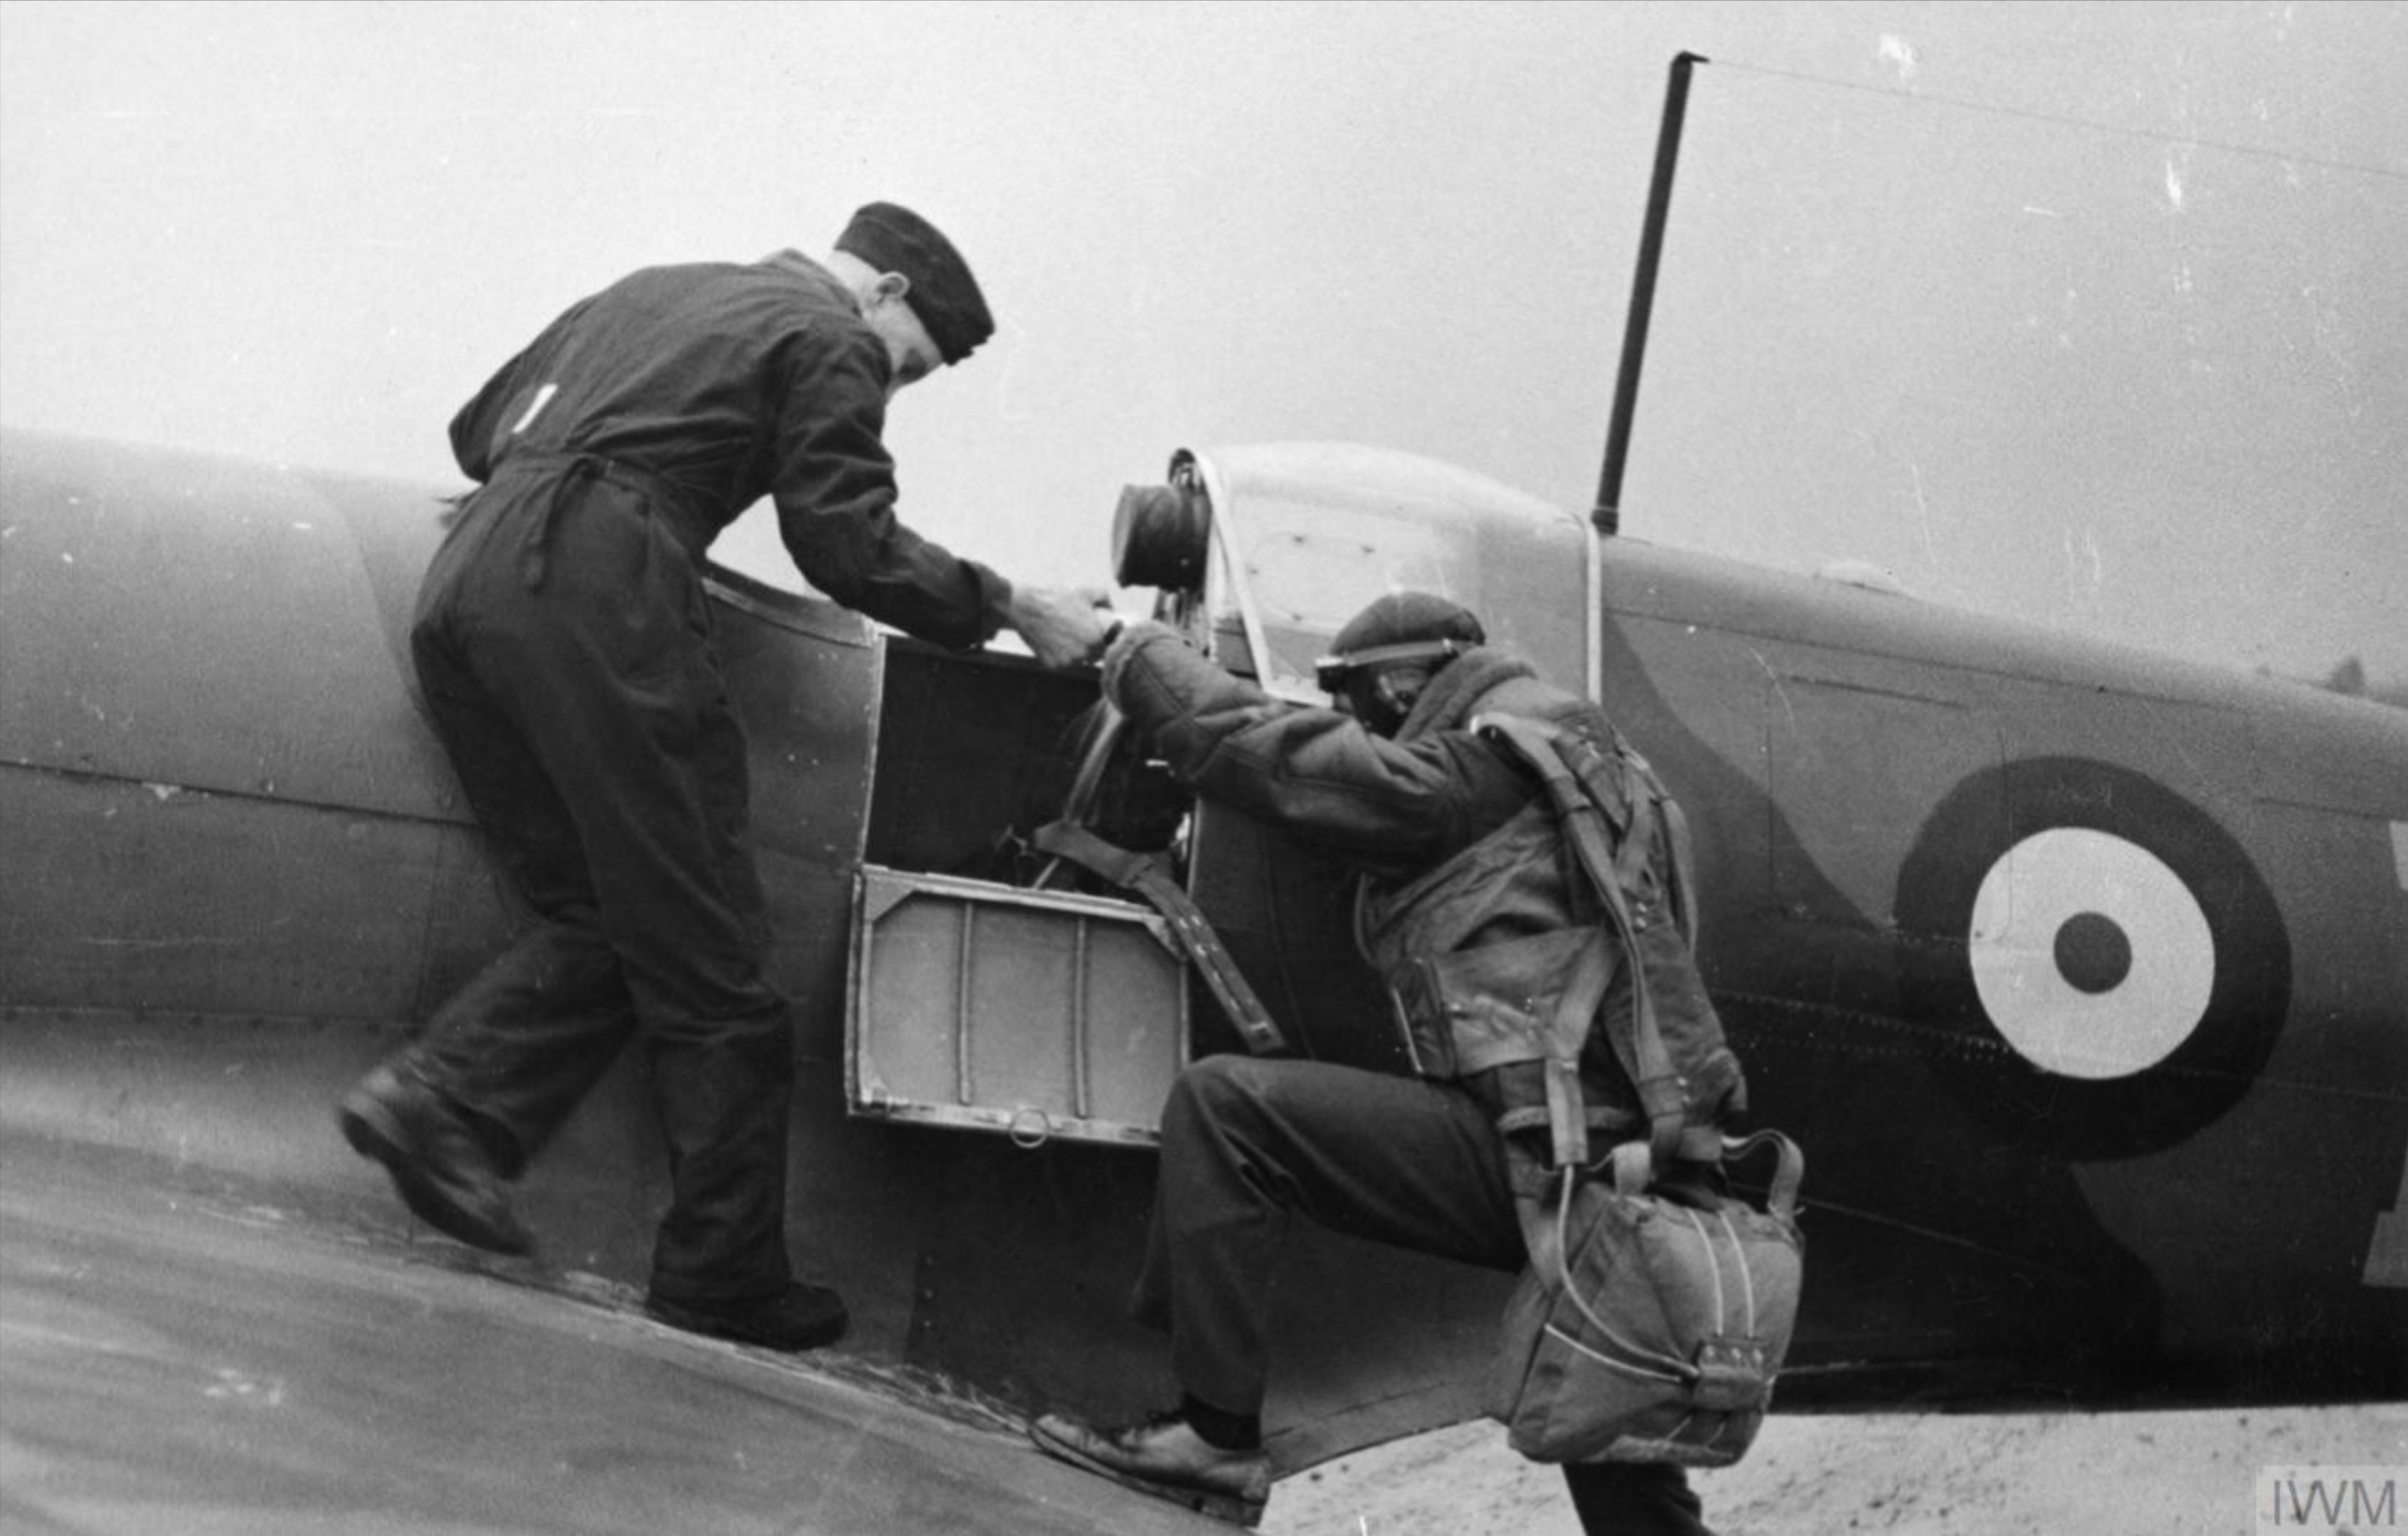 Spitfire MkI RAF being helped into his aircraft Nov 1940 IWM HU103970